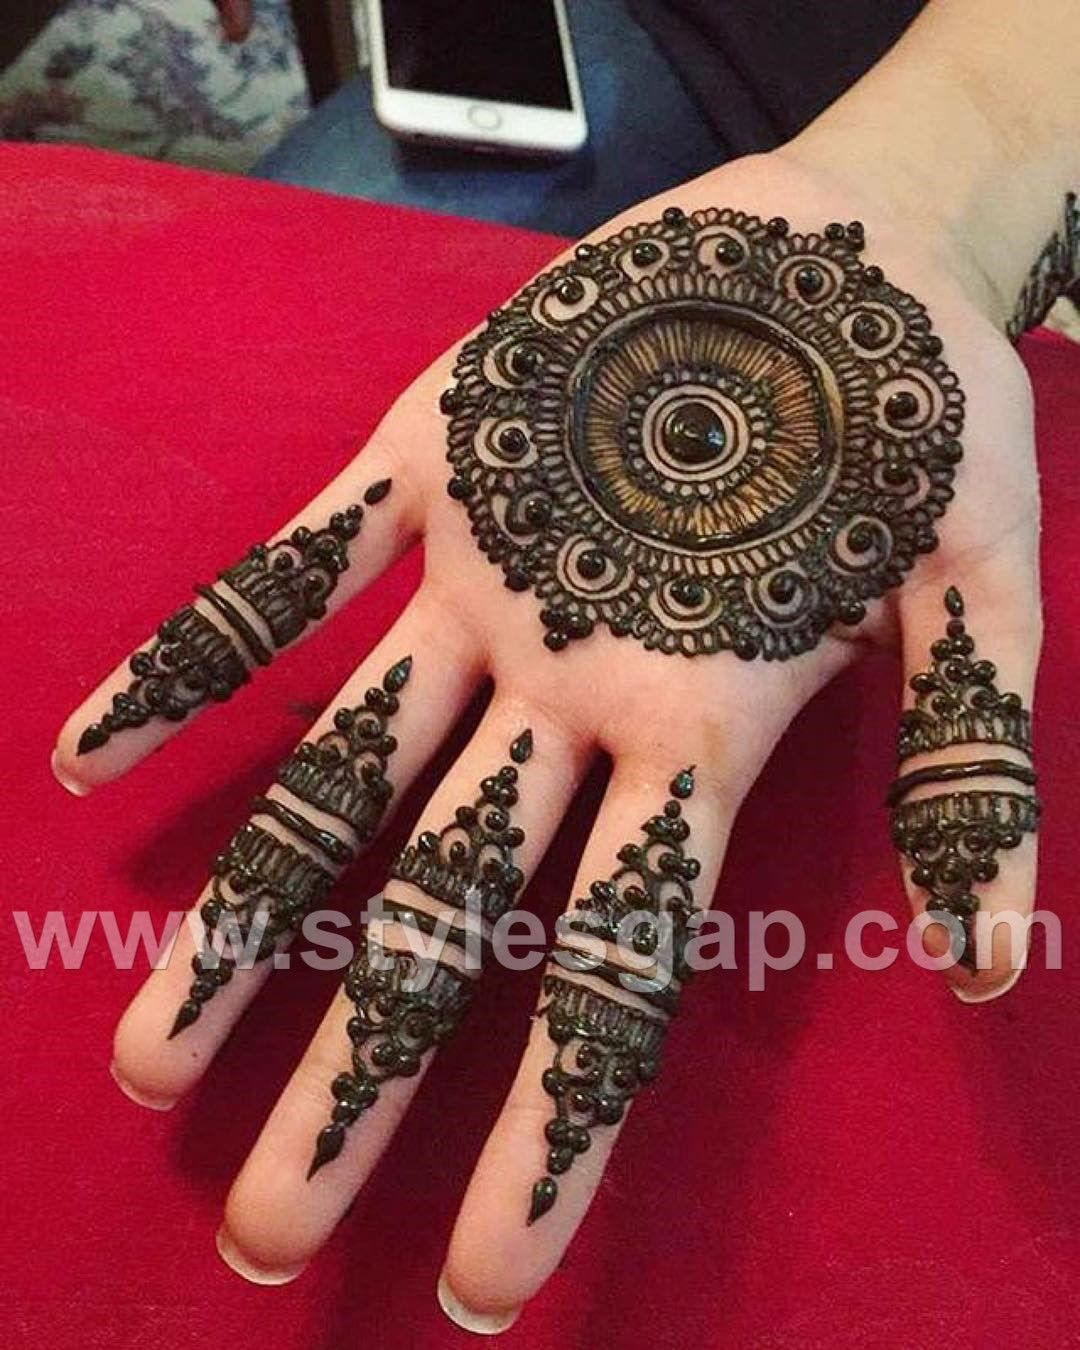 New Mehndi Designs 2021